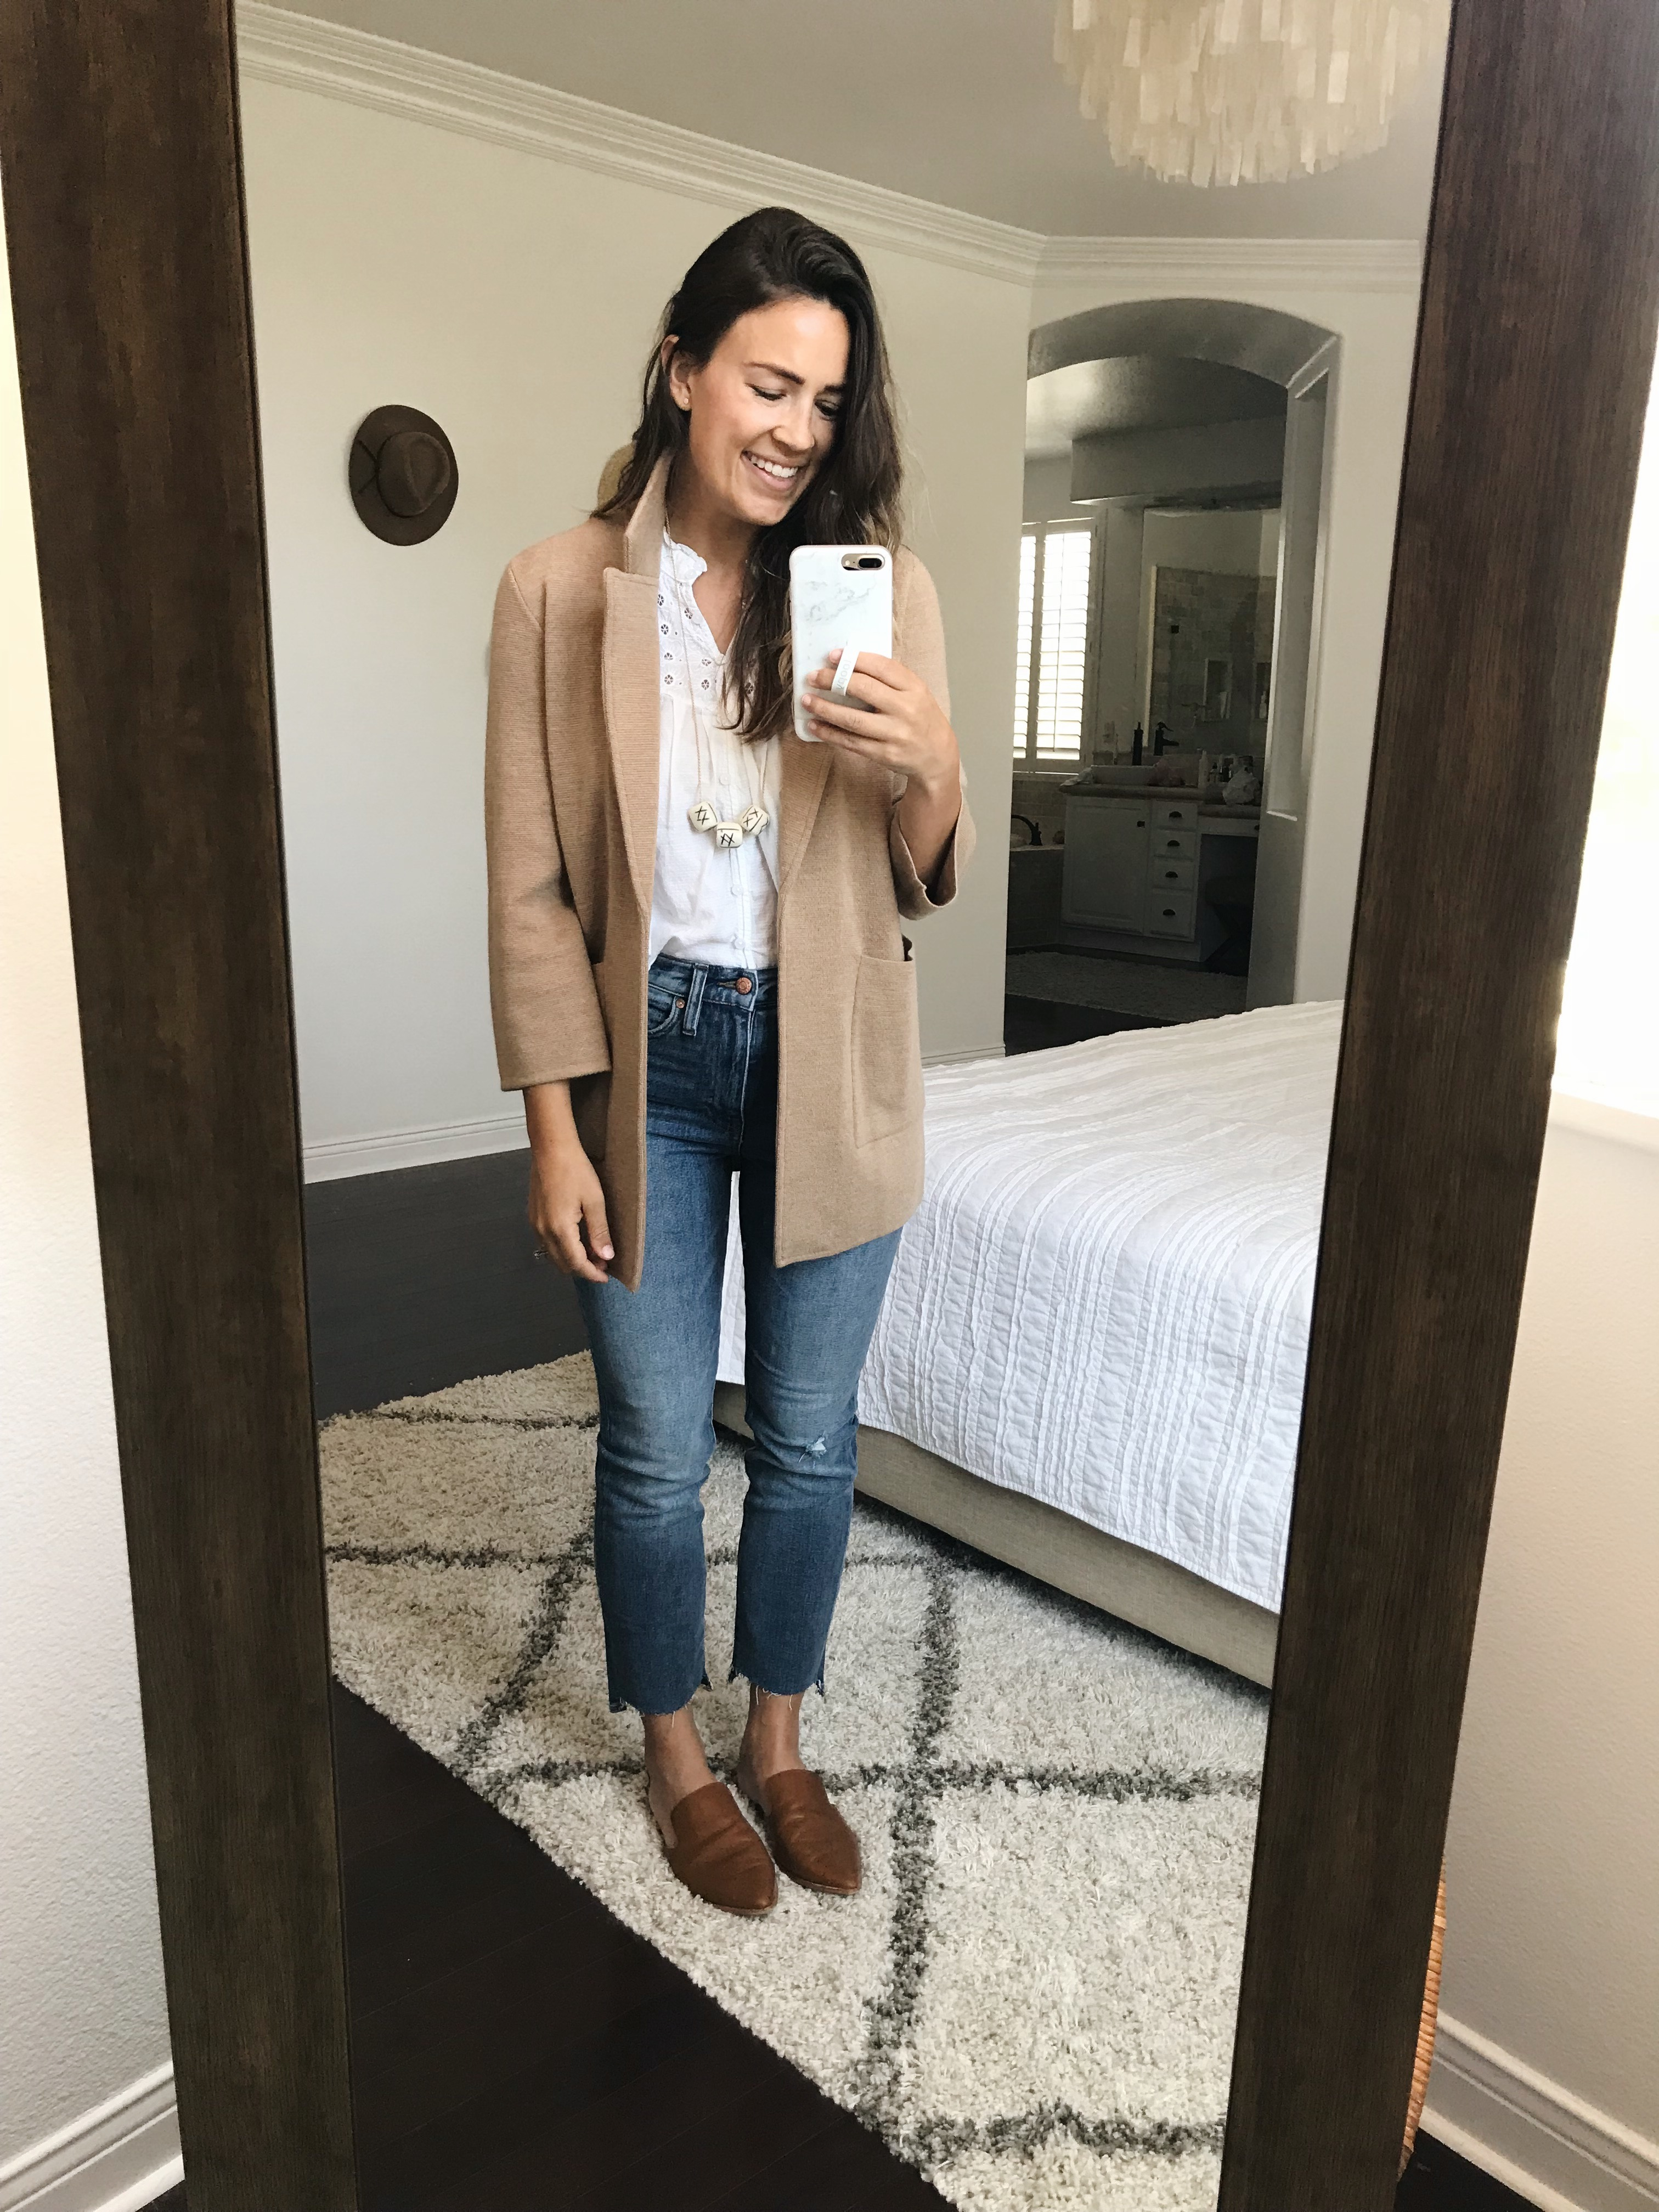 7c0e7cb0bb7 Jeans   Similar white lace top   Another similar white lace top   Sweater  blazer (TTS or size down—this is so versatile and definitely one of my  closet ...